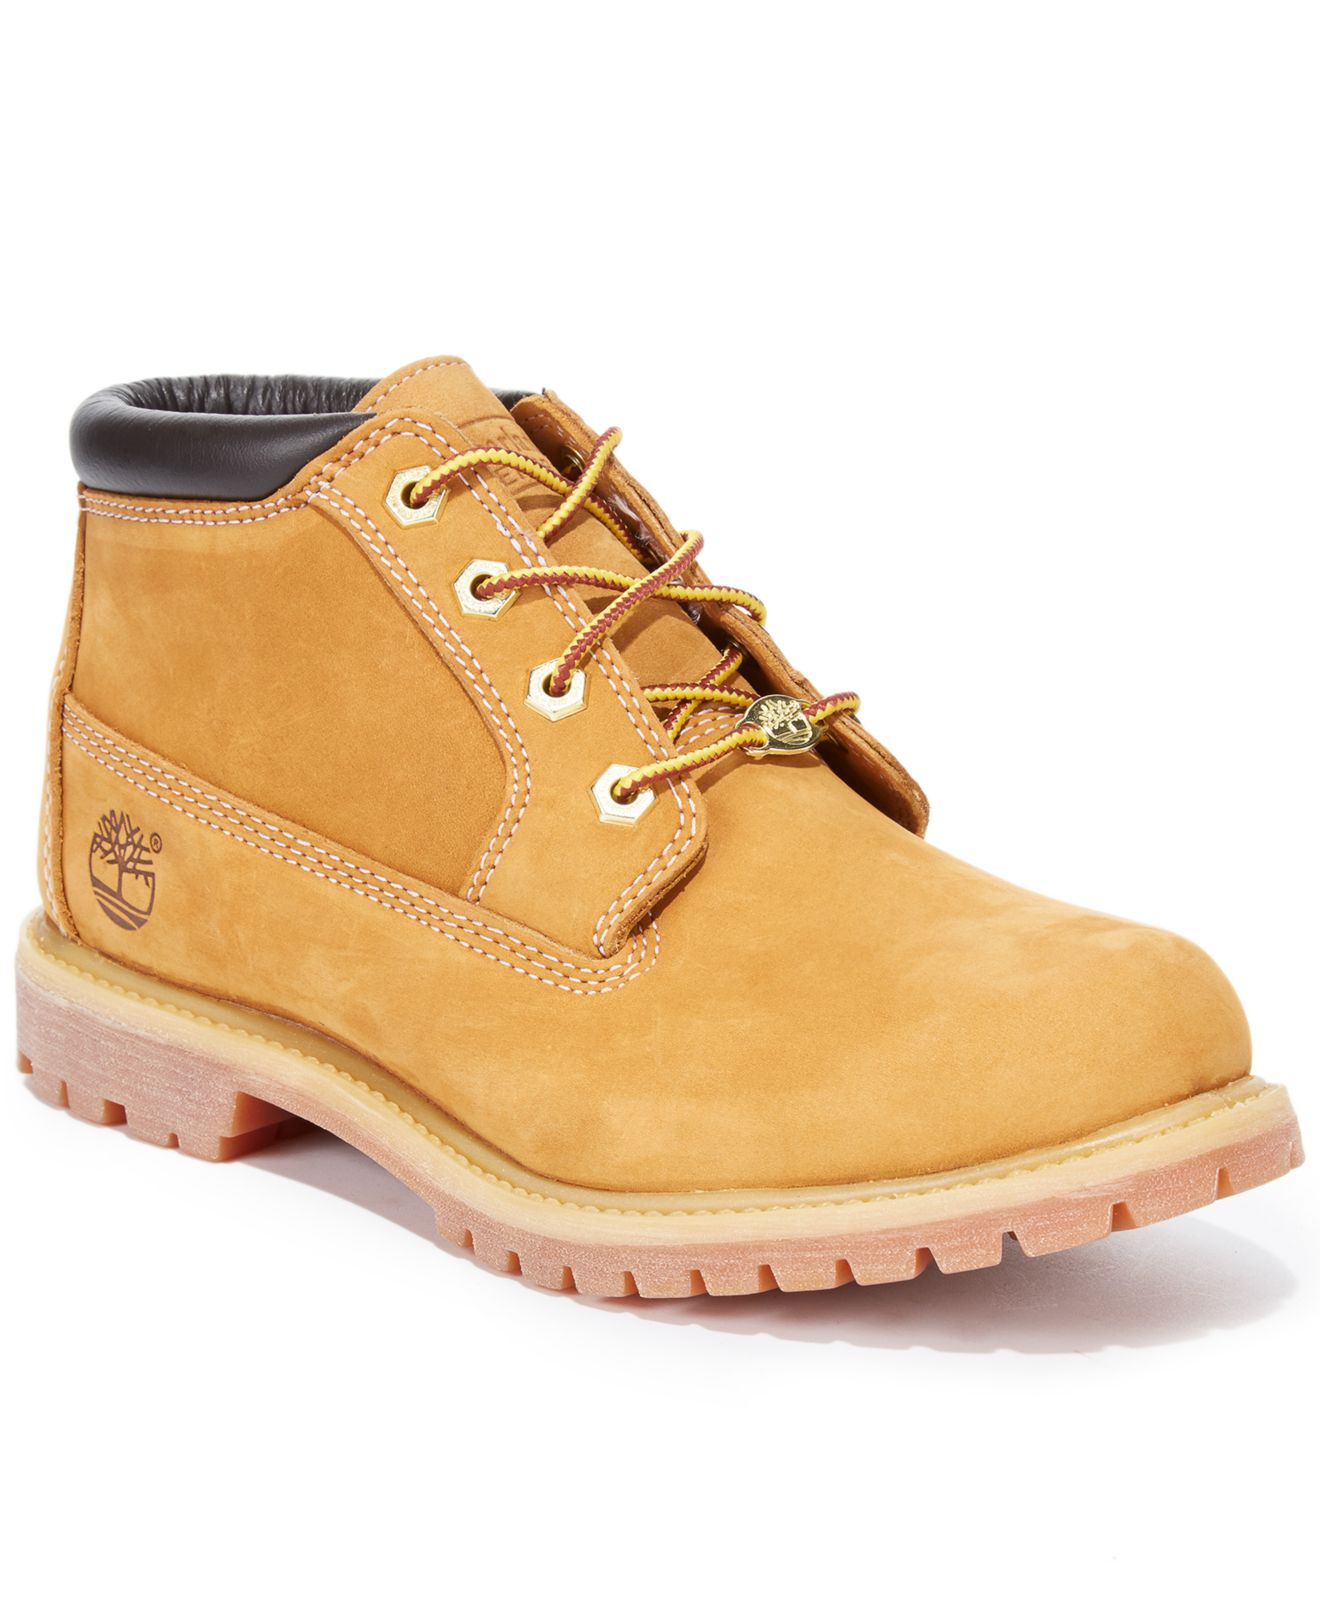 Elegant Timberland Authentics Teddy Fleece 8329R New Womens Wheat Fold Down Boots Sho